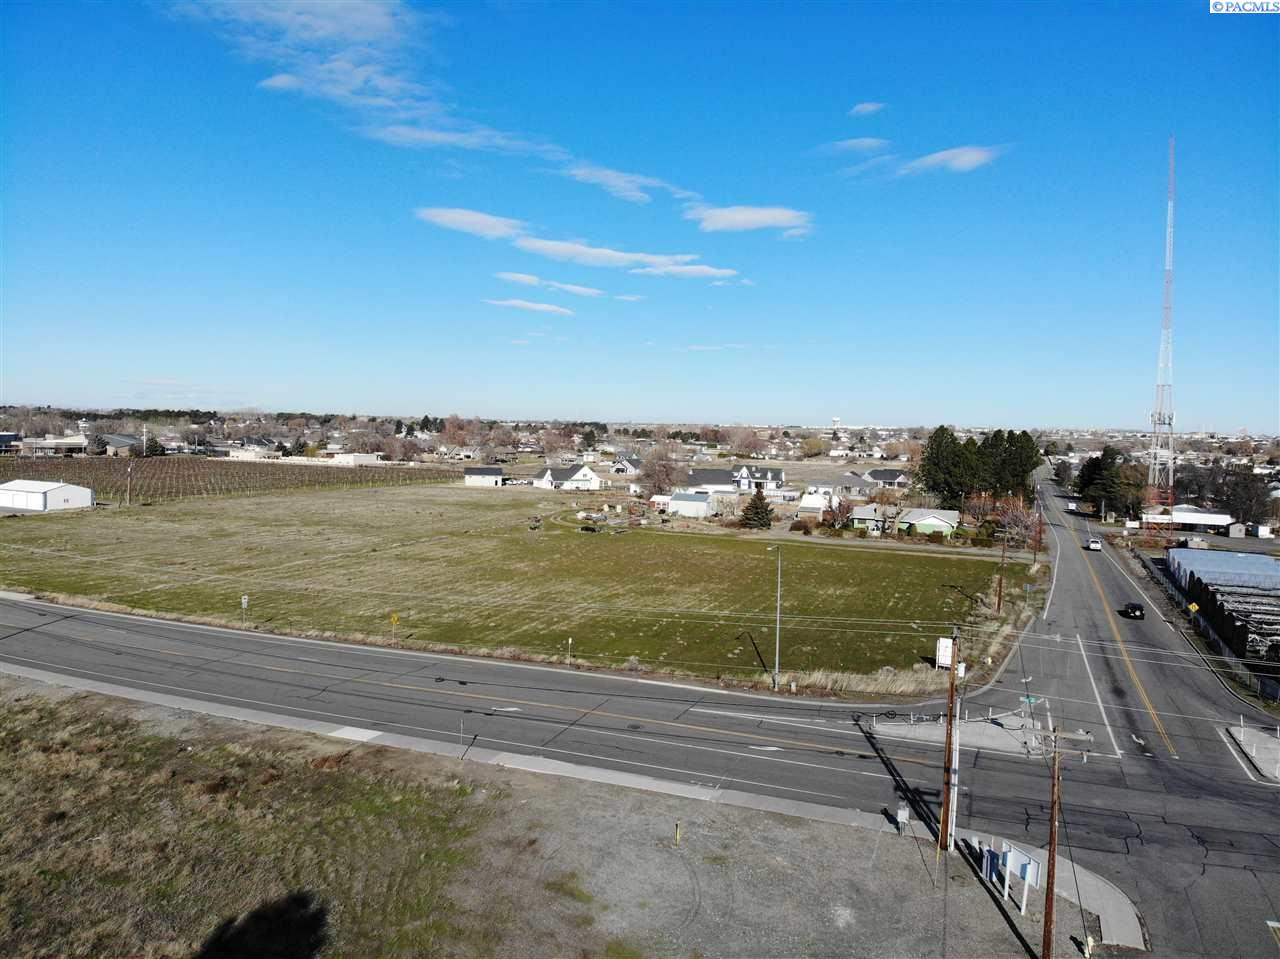 Land for Sale at 1606 Road 68 Pasco, Washington 99301 United States